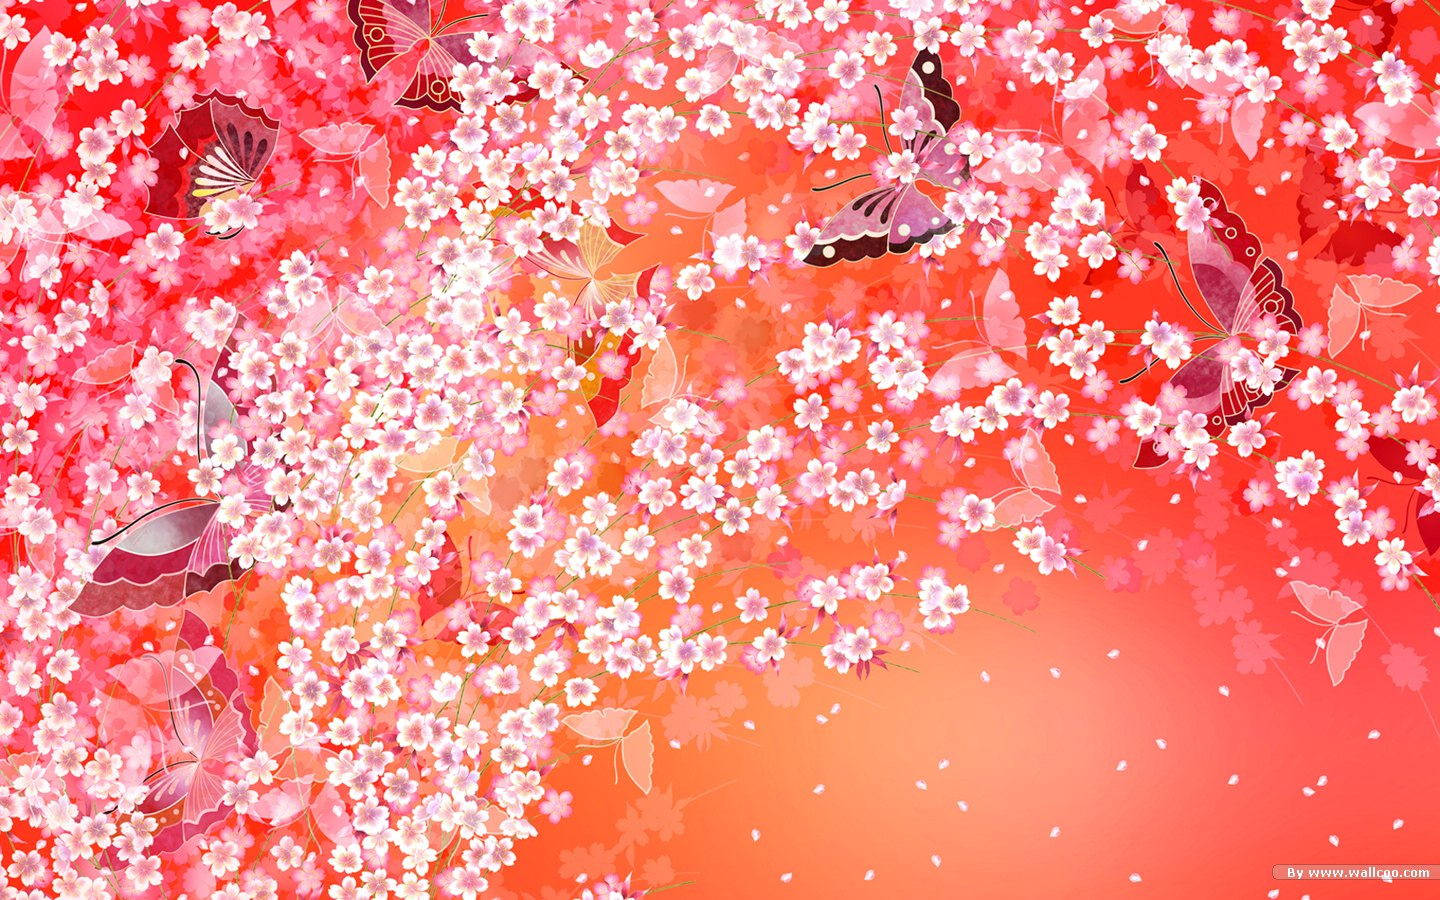 Japanese Kimonos Patterns Design   Colors and Patterns in Japanese 1440x900